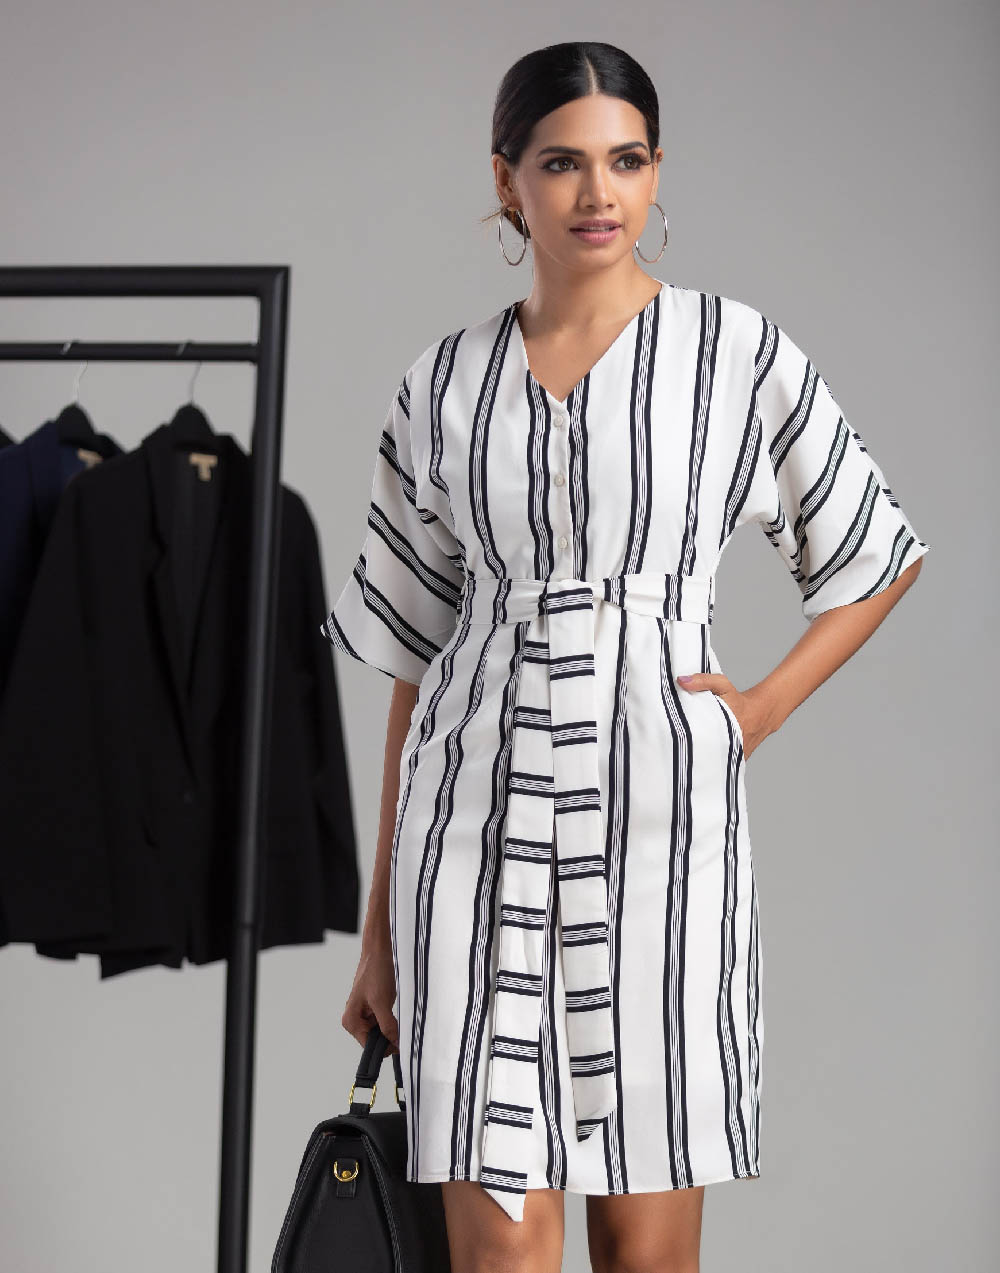 One of the Confident  Work Wear Dress